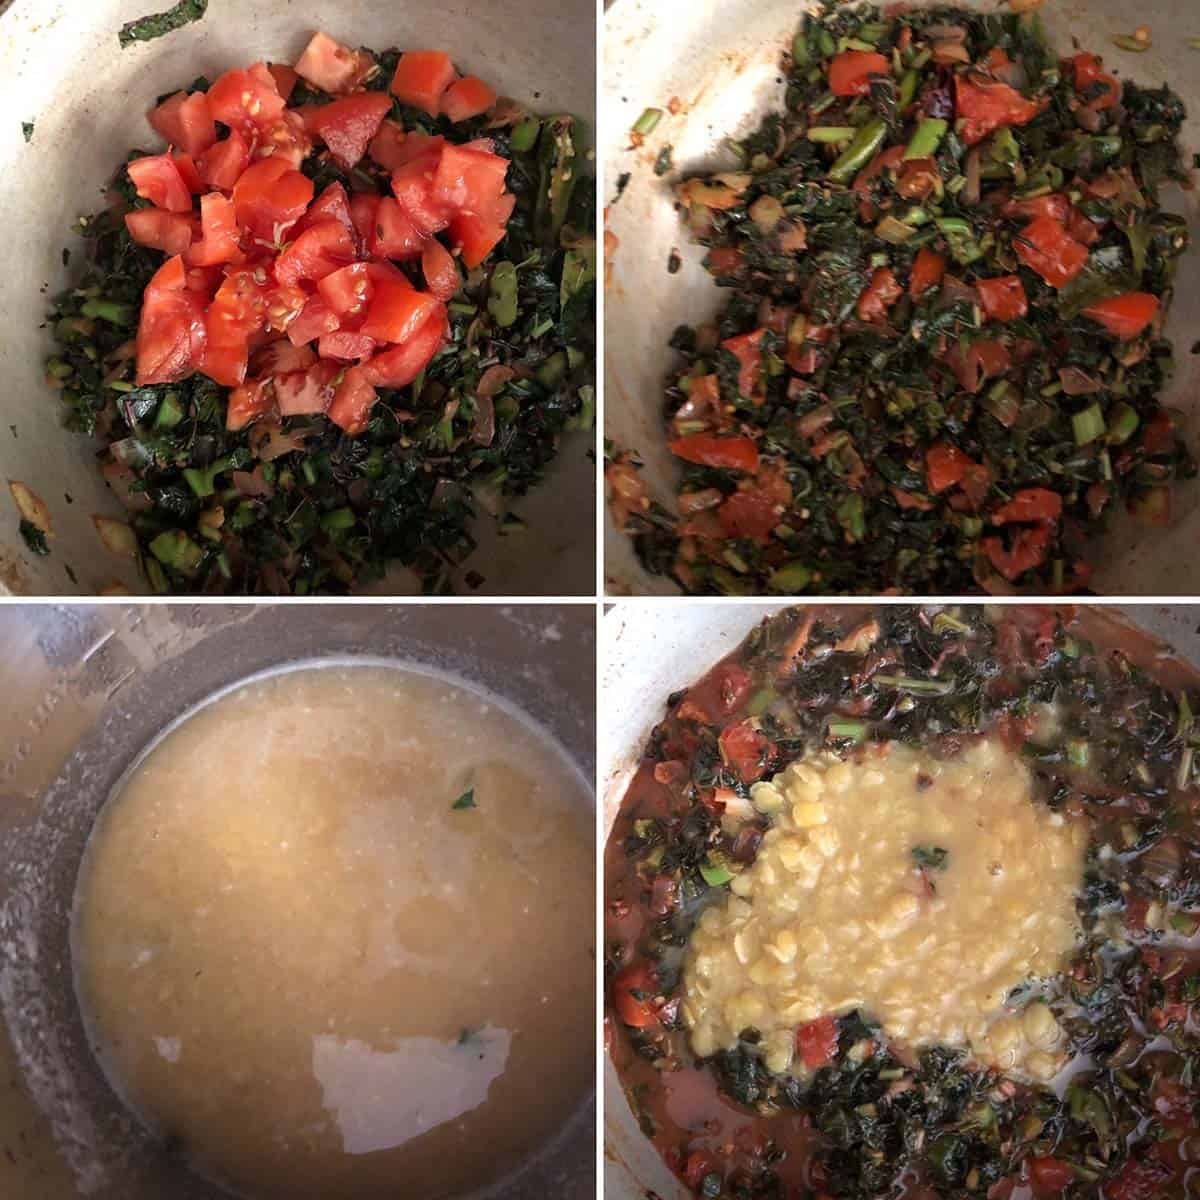 Adding tomatoes, tamarind, cooked dal